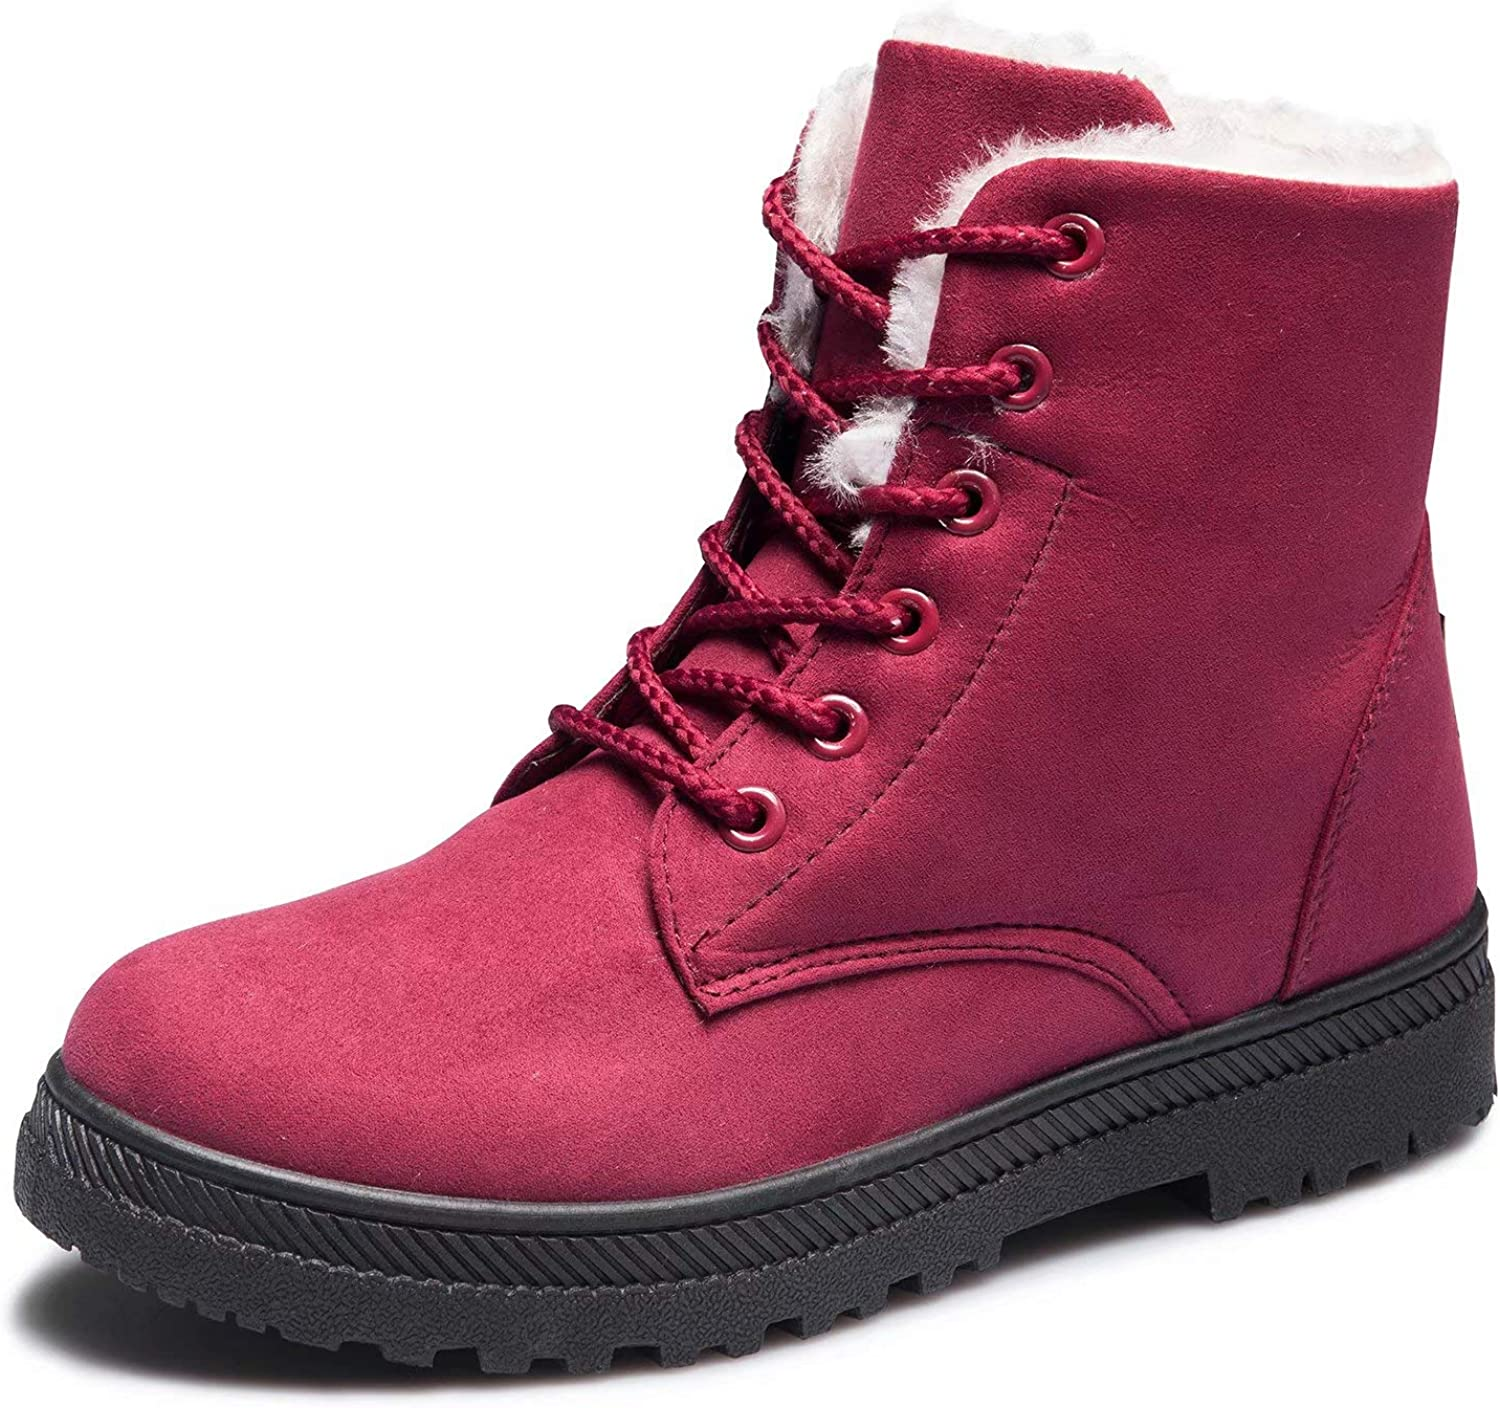 CIOR Fantiny Women's Snow Boots Winter Warm Suede Lace up Snearkers Fashion Flat Platform shoes,NX01,Red,41,2018